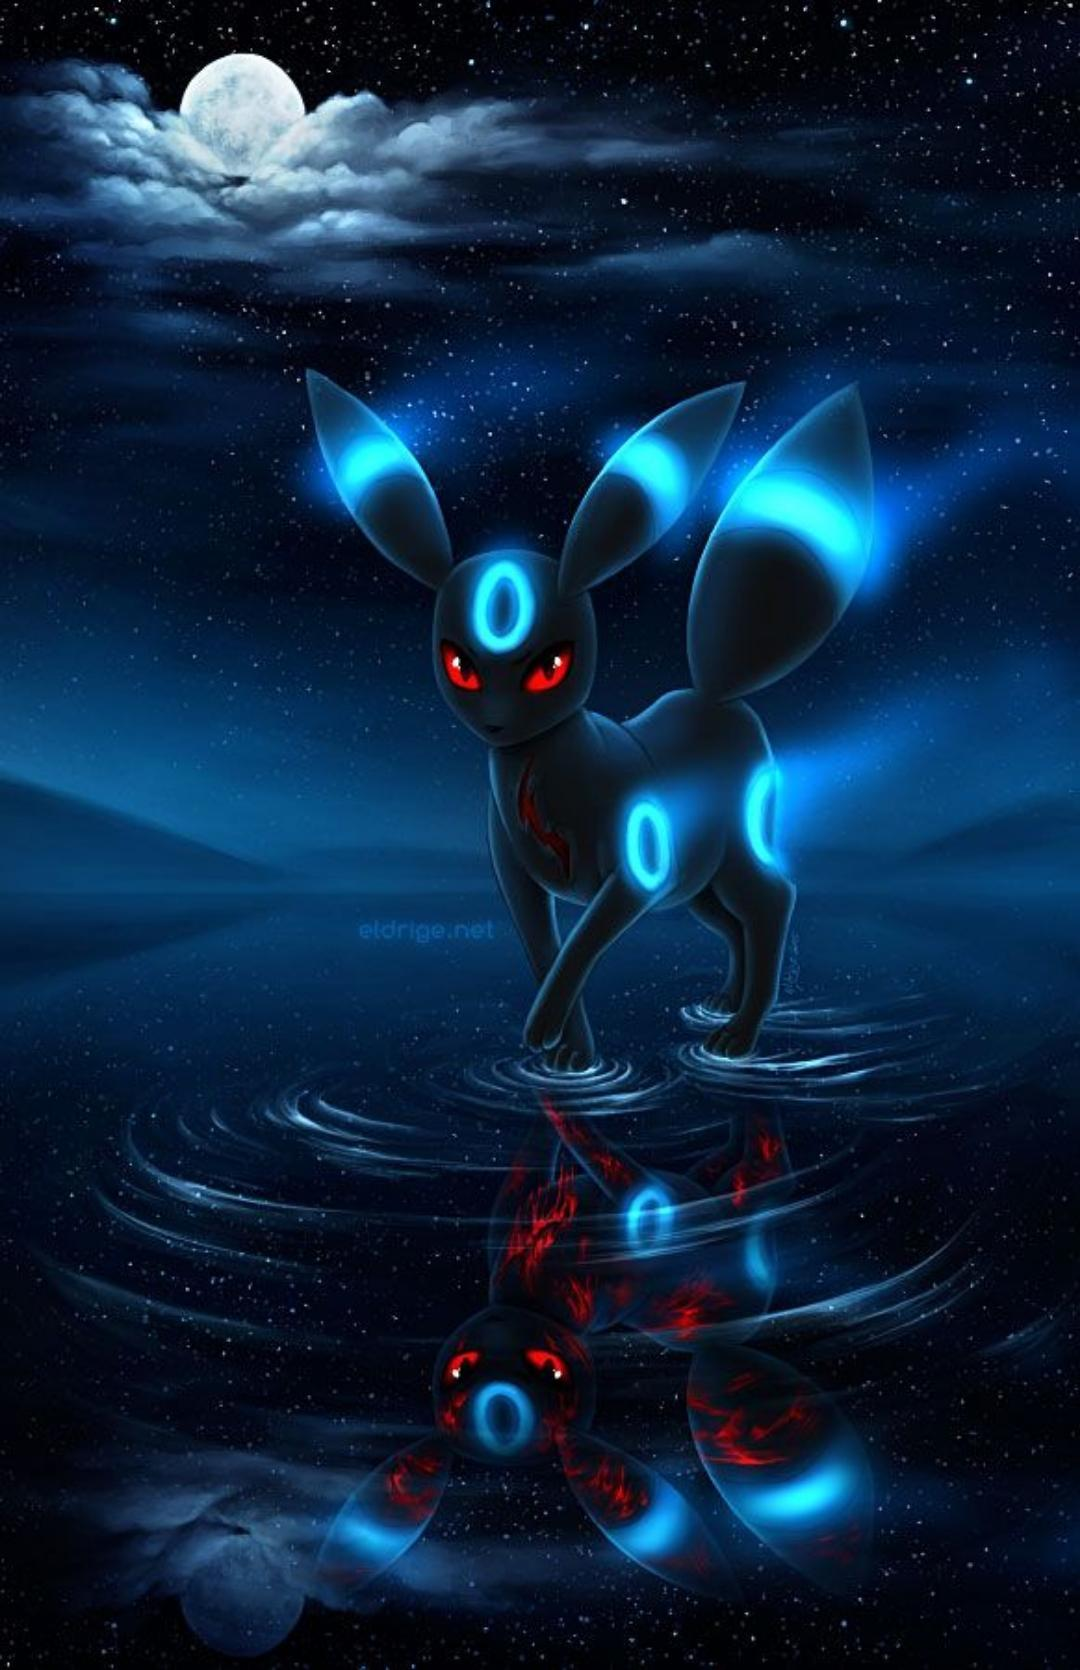 Pokemon wallpaper HD for Android - APK Download